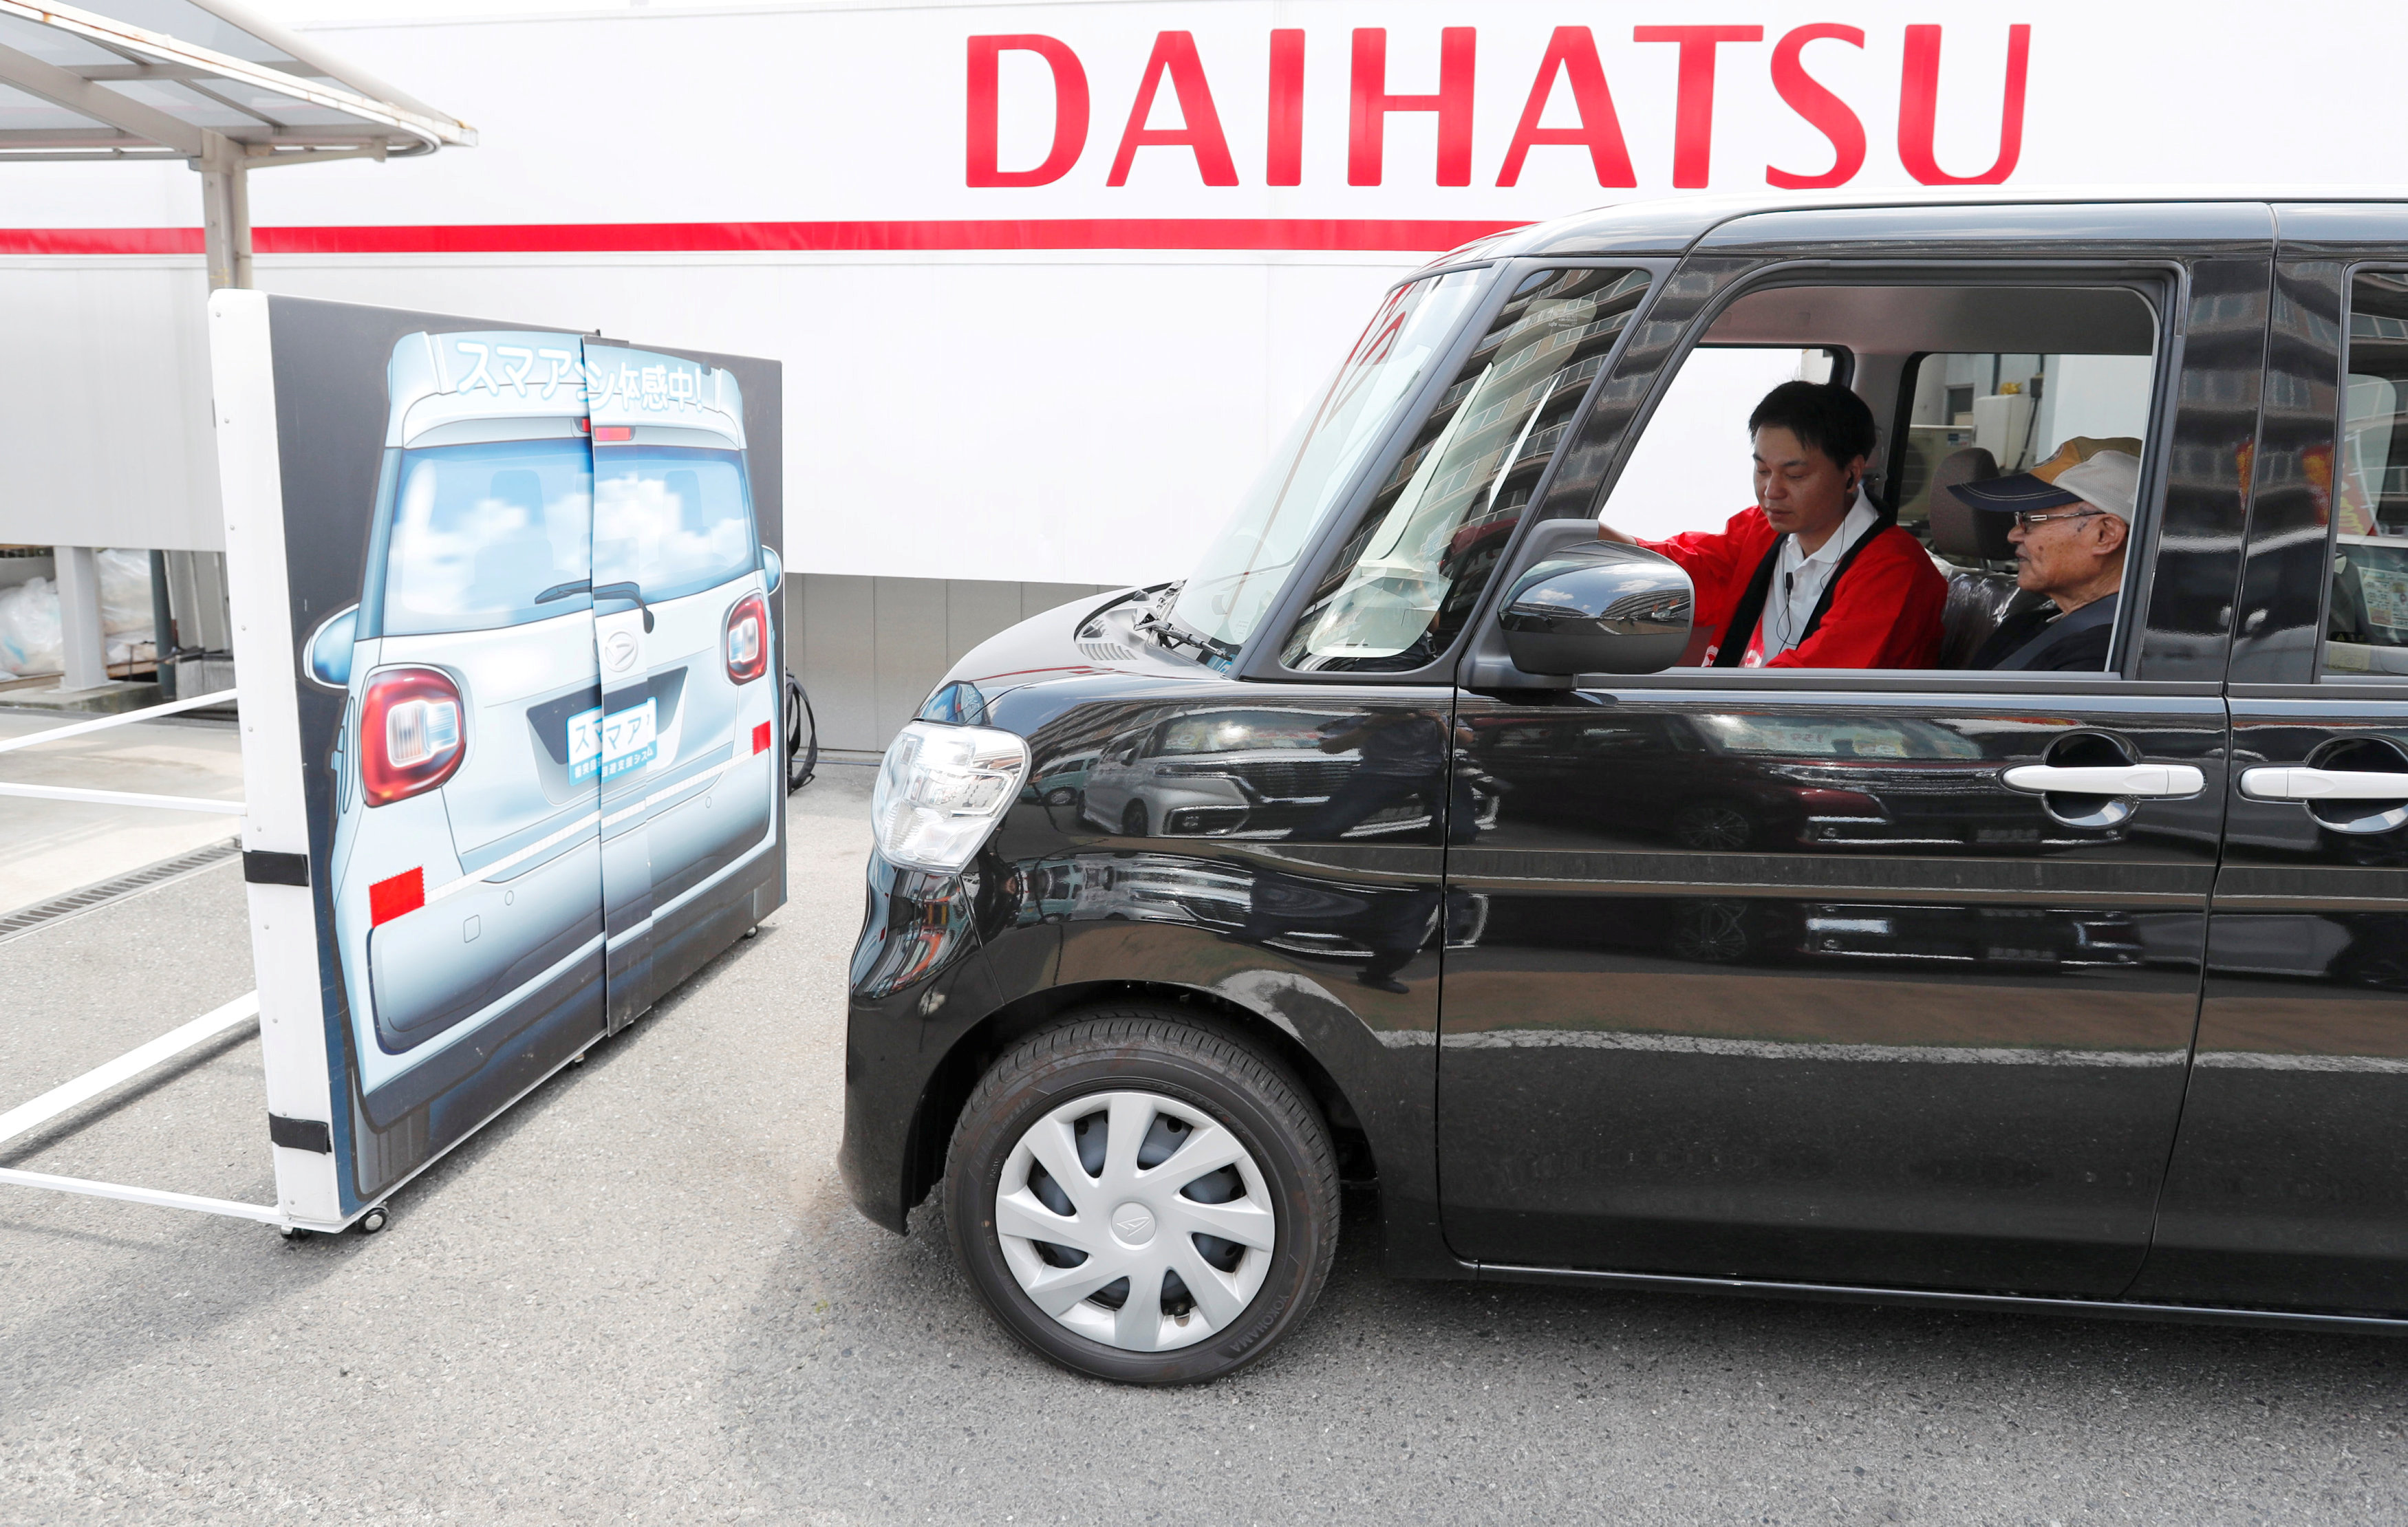 Yorie Miho tries out the automatic emergency braking system in a Daihatsu minicar at a minicar dealership in Yamato, Kanagawa Prefecture.